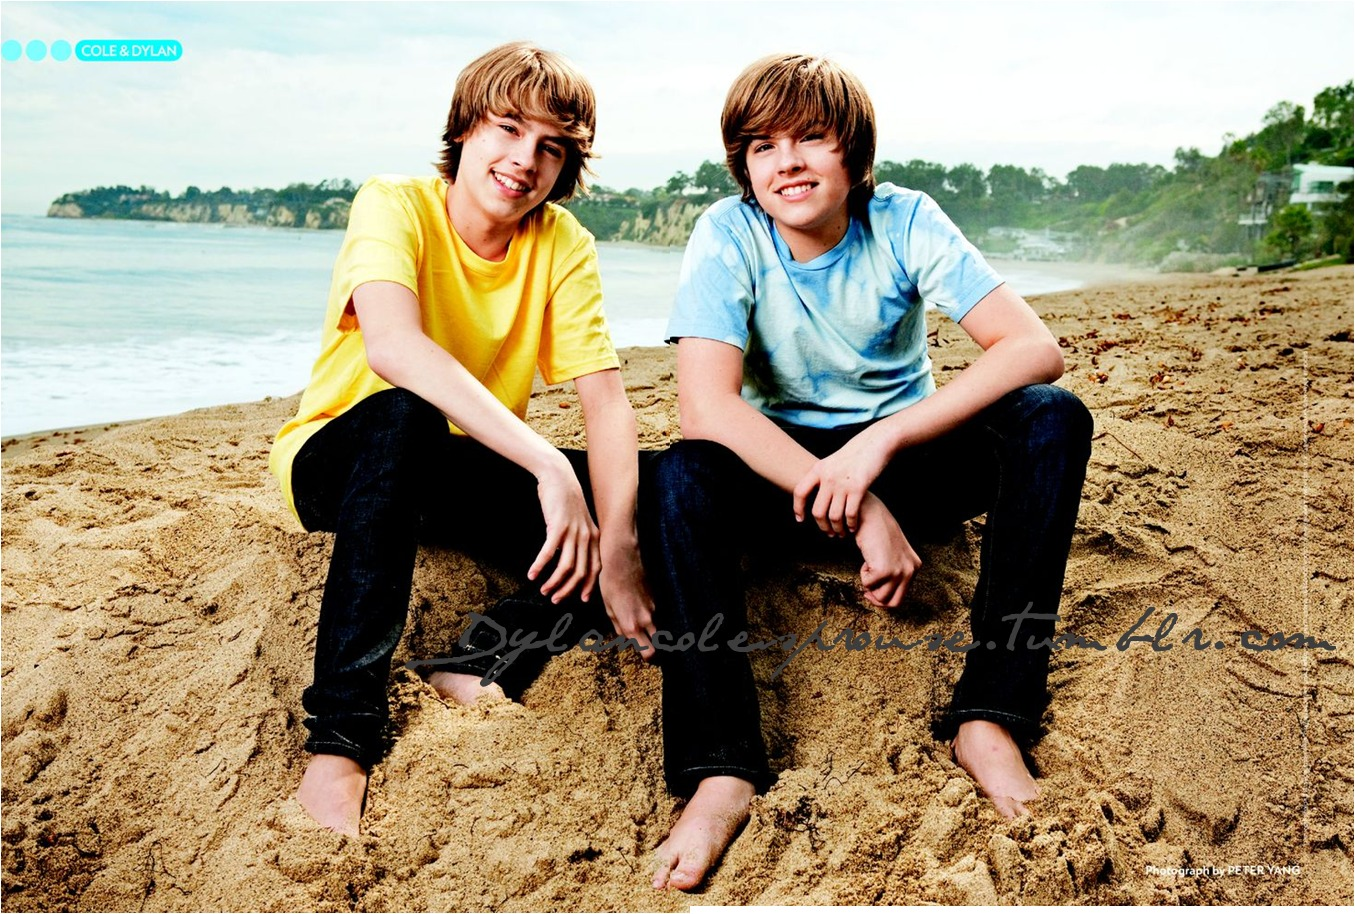 for the most awesomest twins in the world, Dylan and Cole sprouse